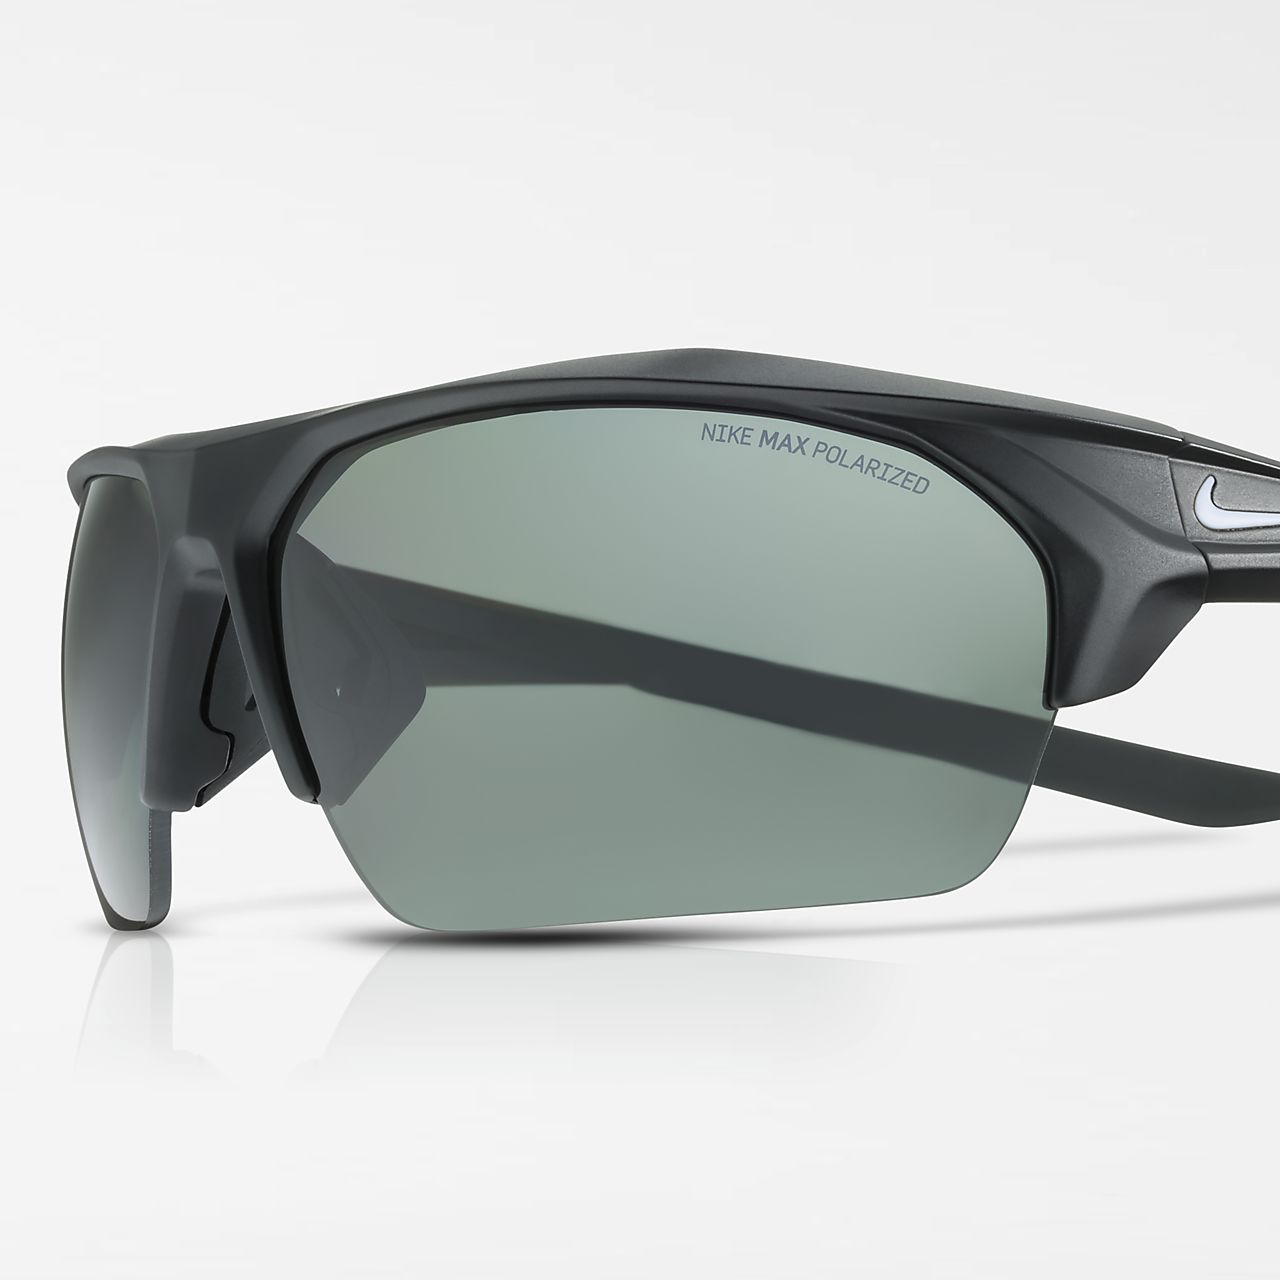 Nike Terminus Polarized Sunglasses